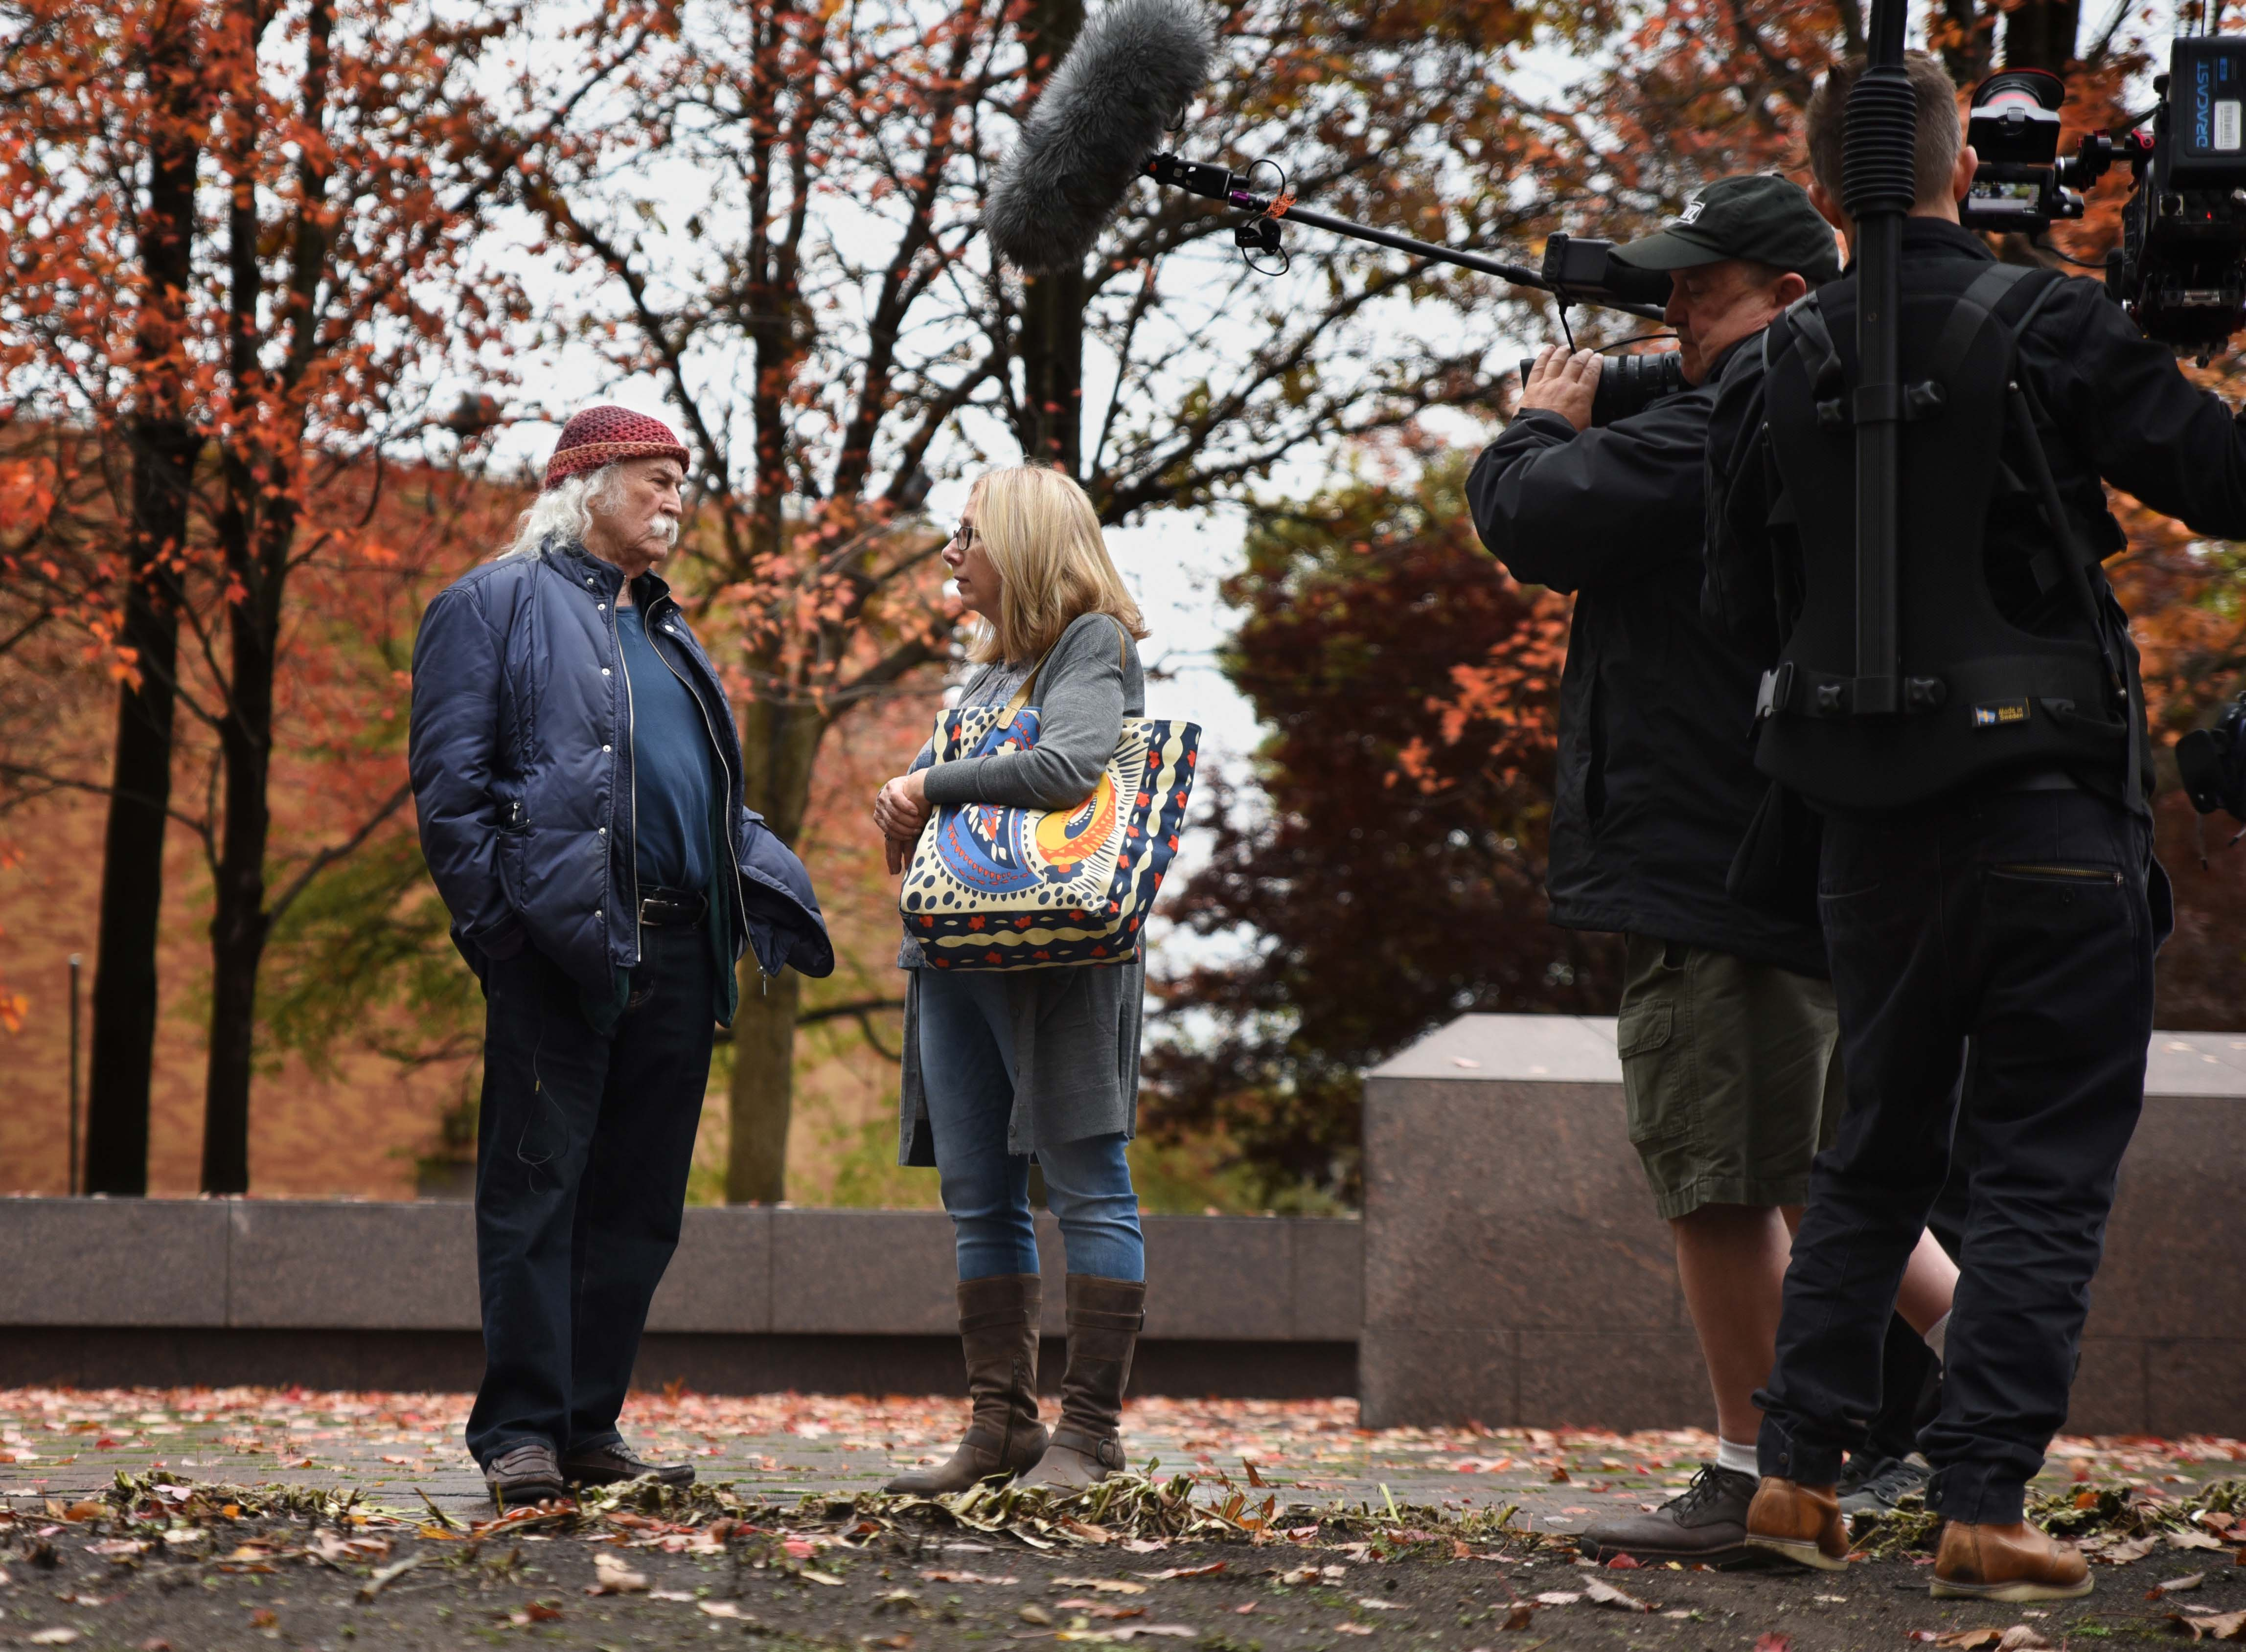 Singer-songwriter David Crosby talks to Laura Davis, Kent State Professor Emerita of English and founding director of the May 4 Visitors Center, at the May 4 Memorial.